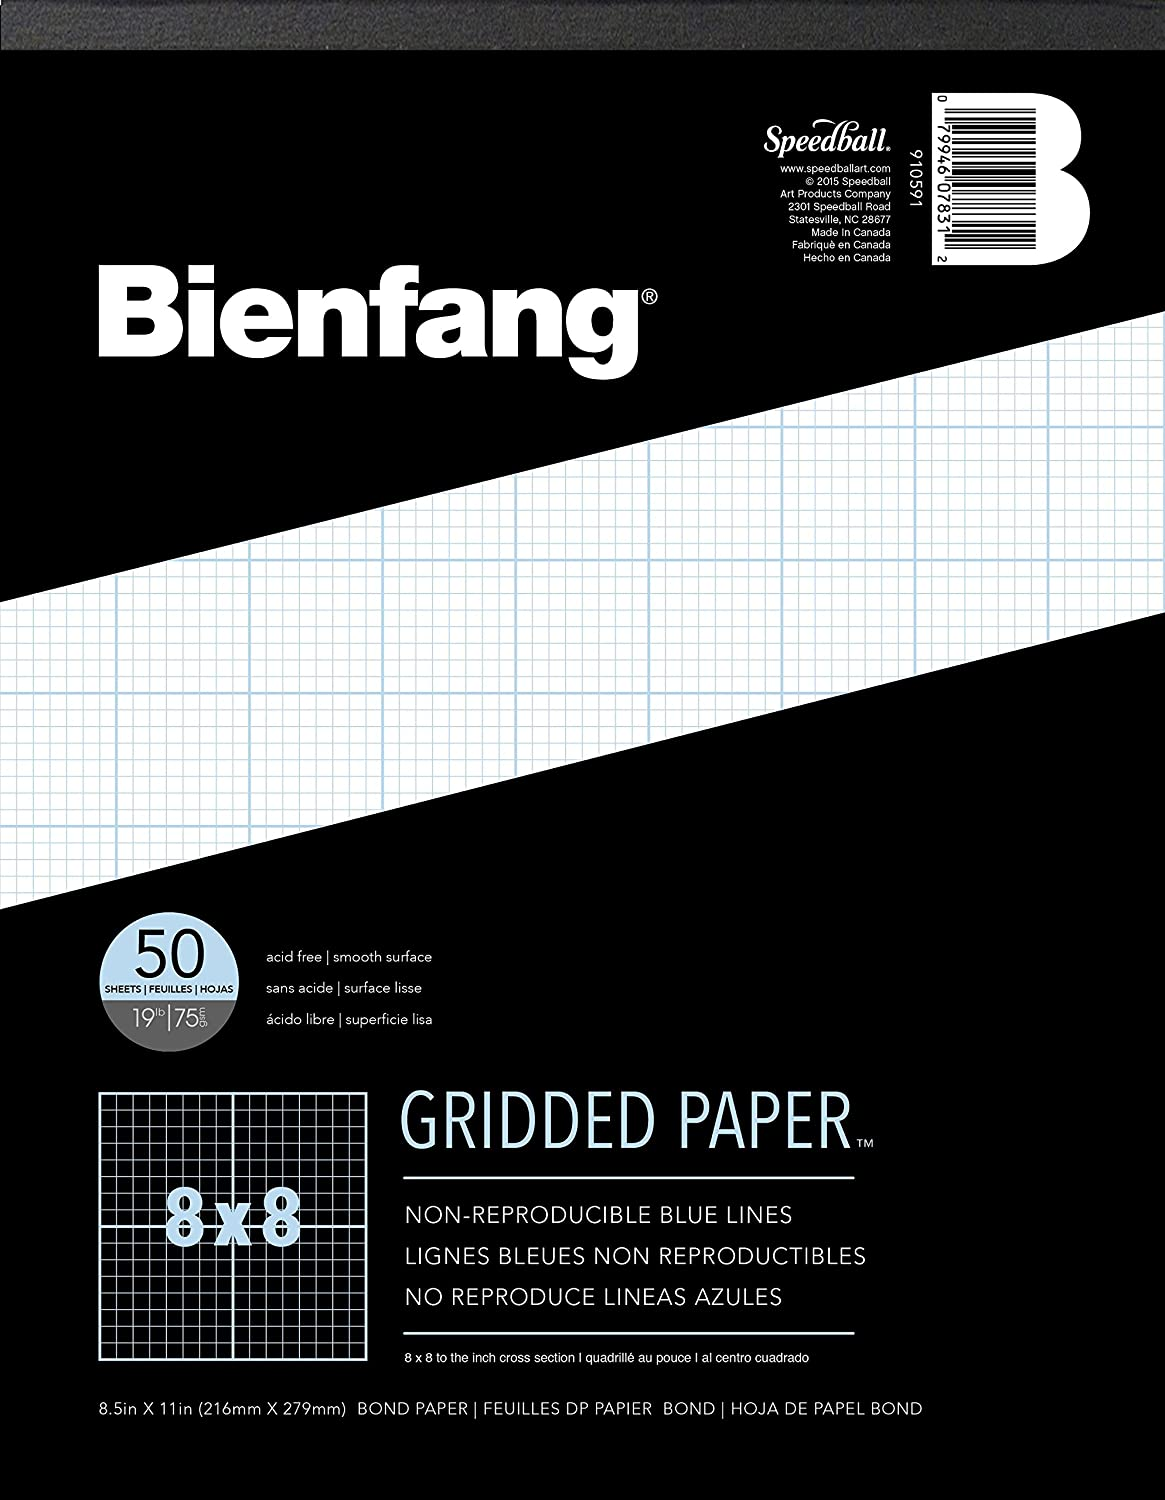 amazon com bienfang designer grid paper 50 sheets 8 1 2 inch by amazon com bienfang designer grid paper 50 sheets 8 1 2 inch by 11 inch pad 8 by 8 cross section arts crafts sewing